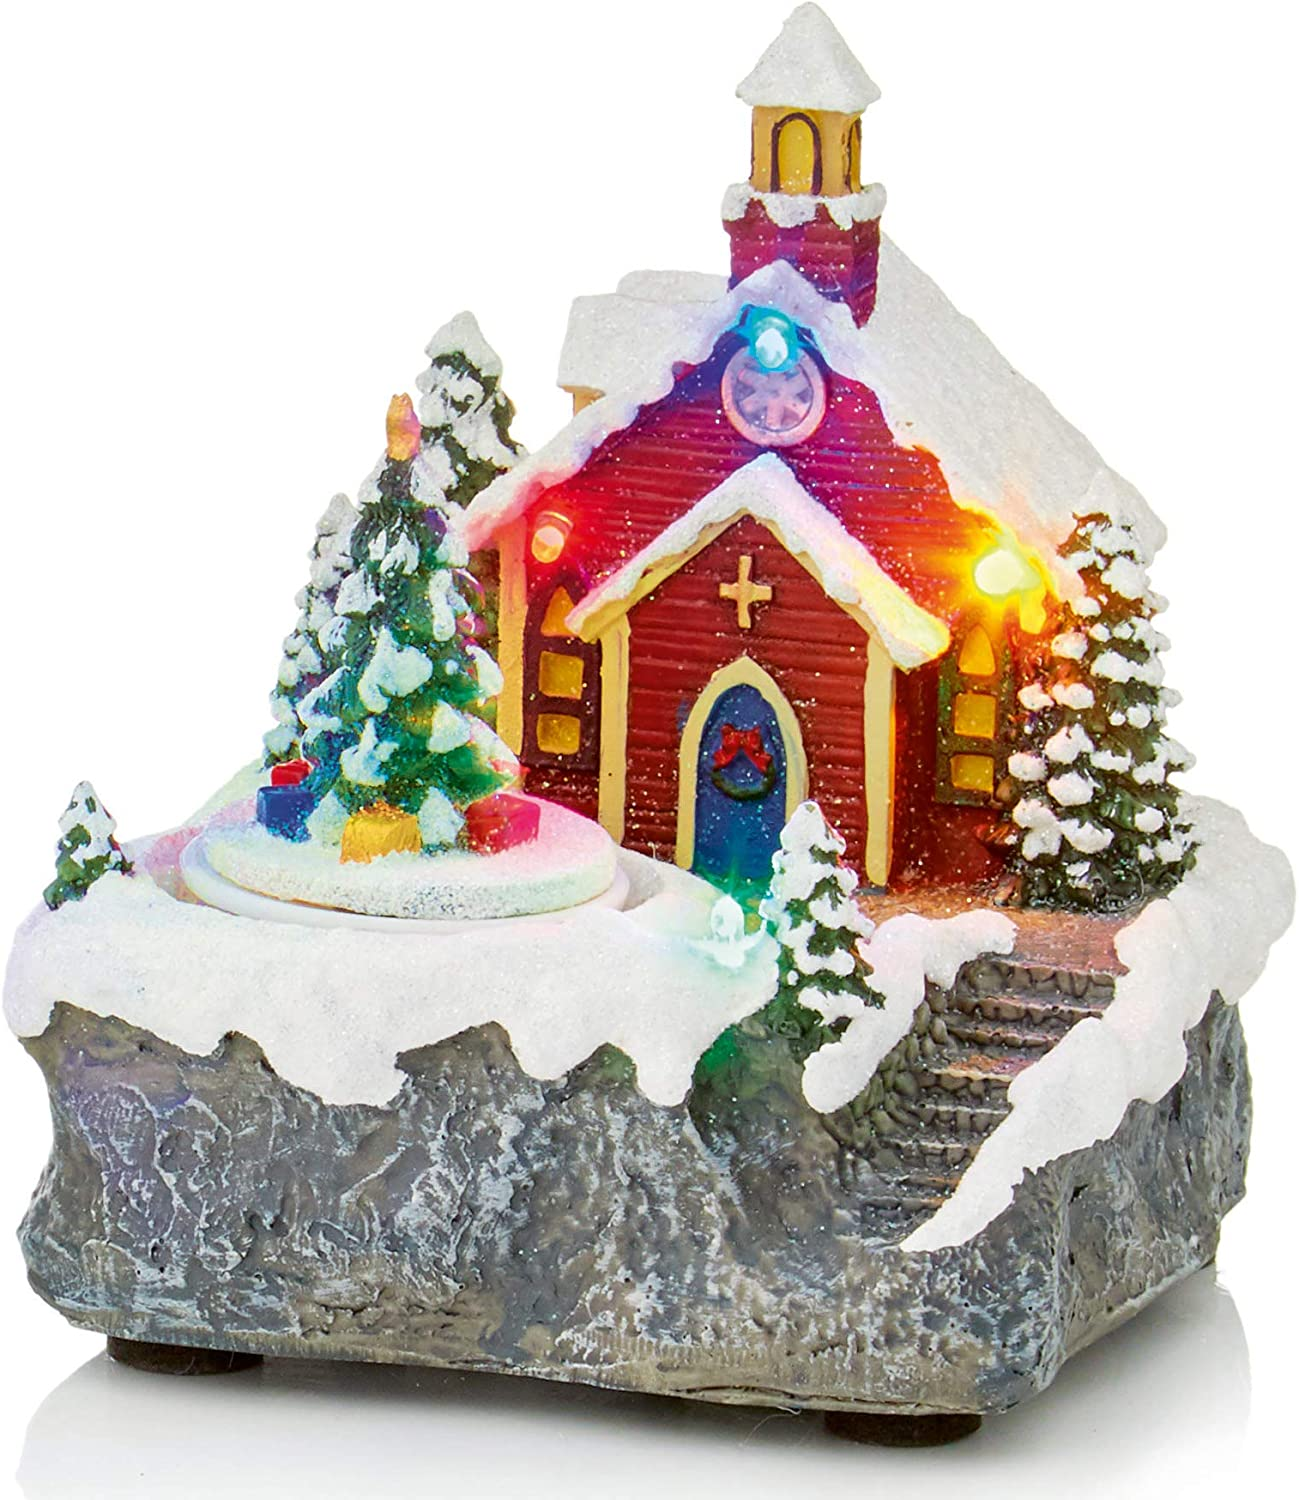 Widdle Celebrations Christmas 14cm Battery Vill Low price Operated Limited time sale LED Lit